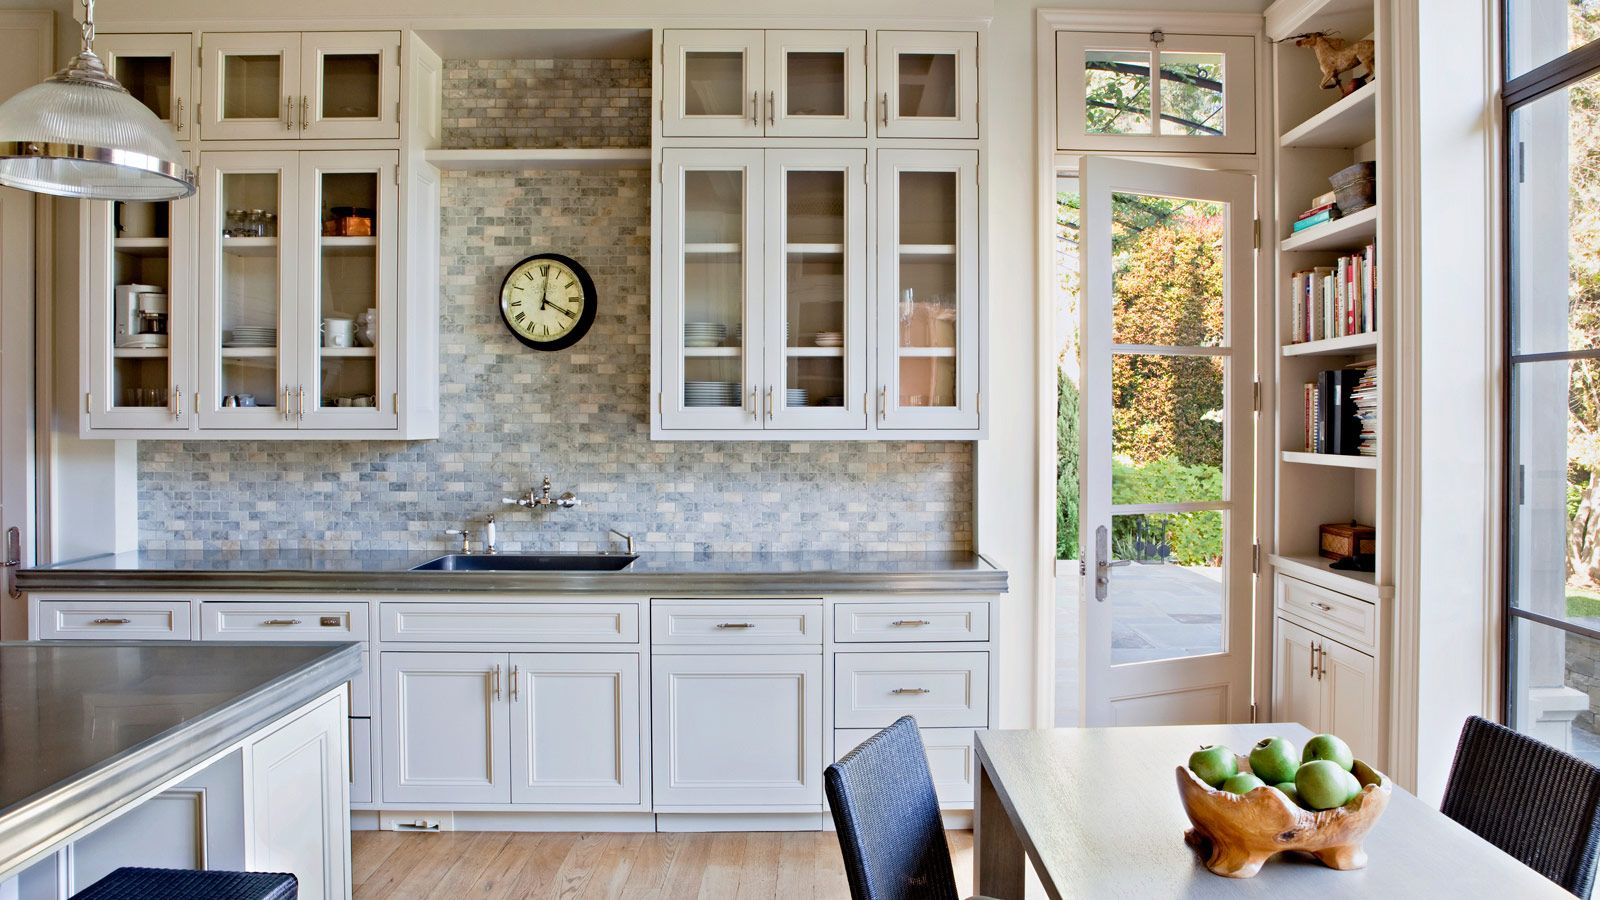 A gorgeous, light-filled kitchen in the Bristol Circle Residence by architect William Hefner